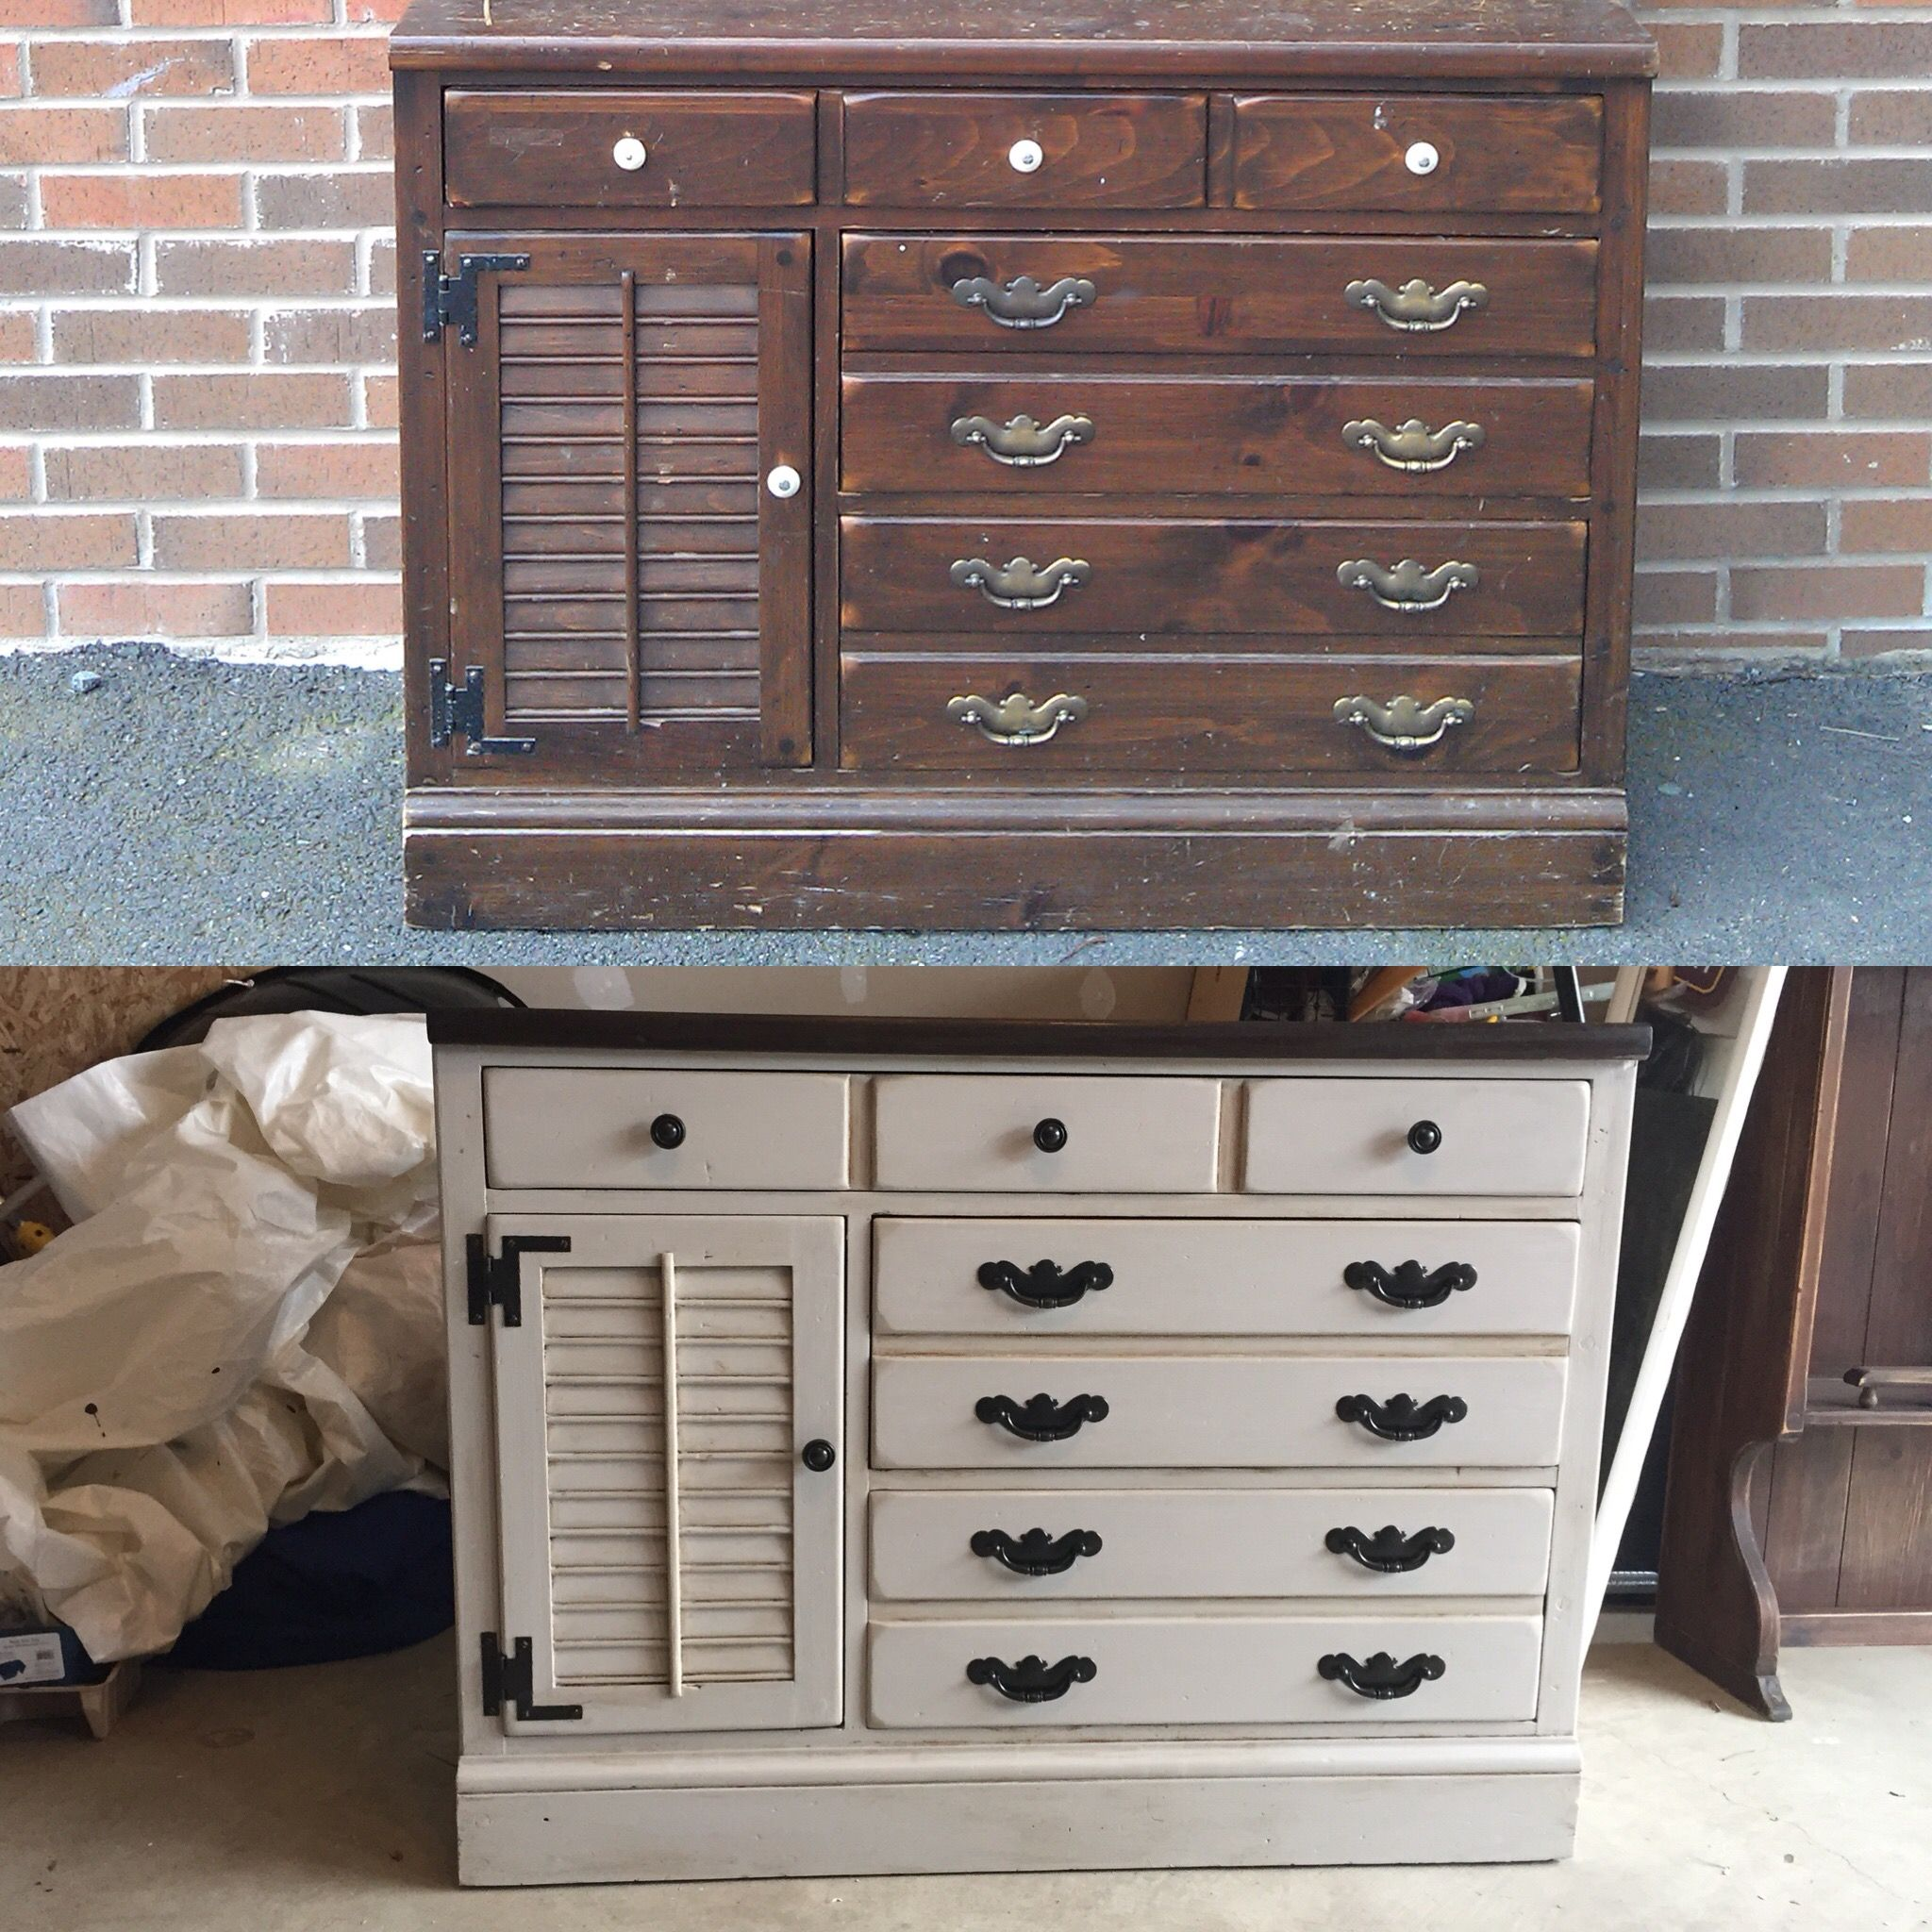 Vintage Ethan Allen Hutch Found By A Dumpster Used